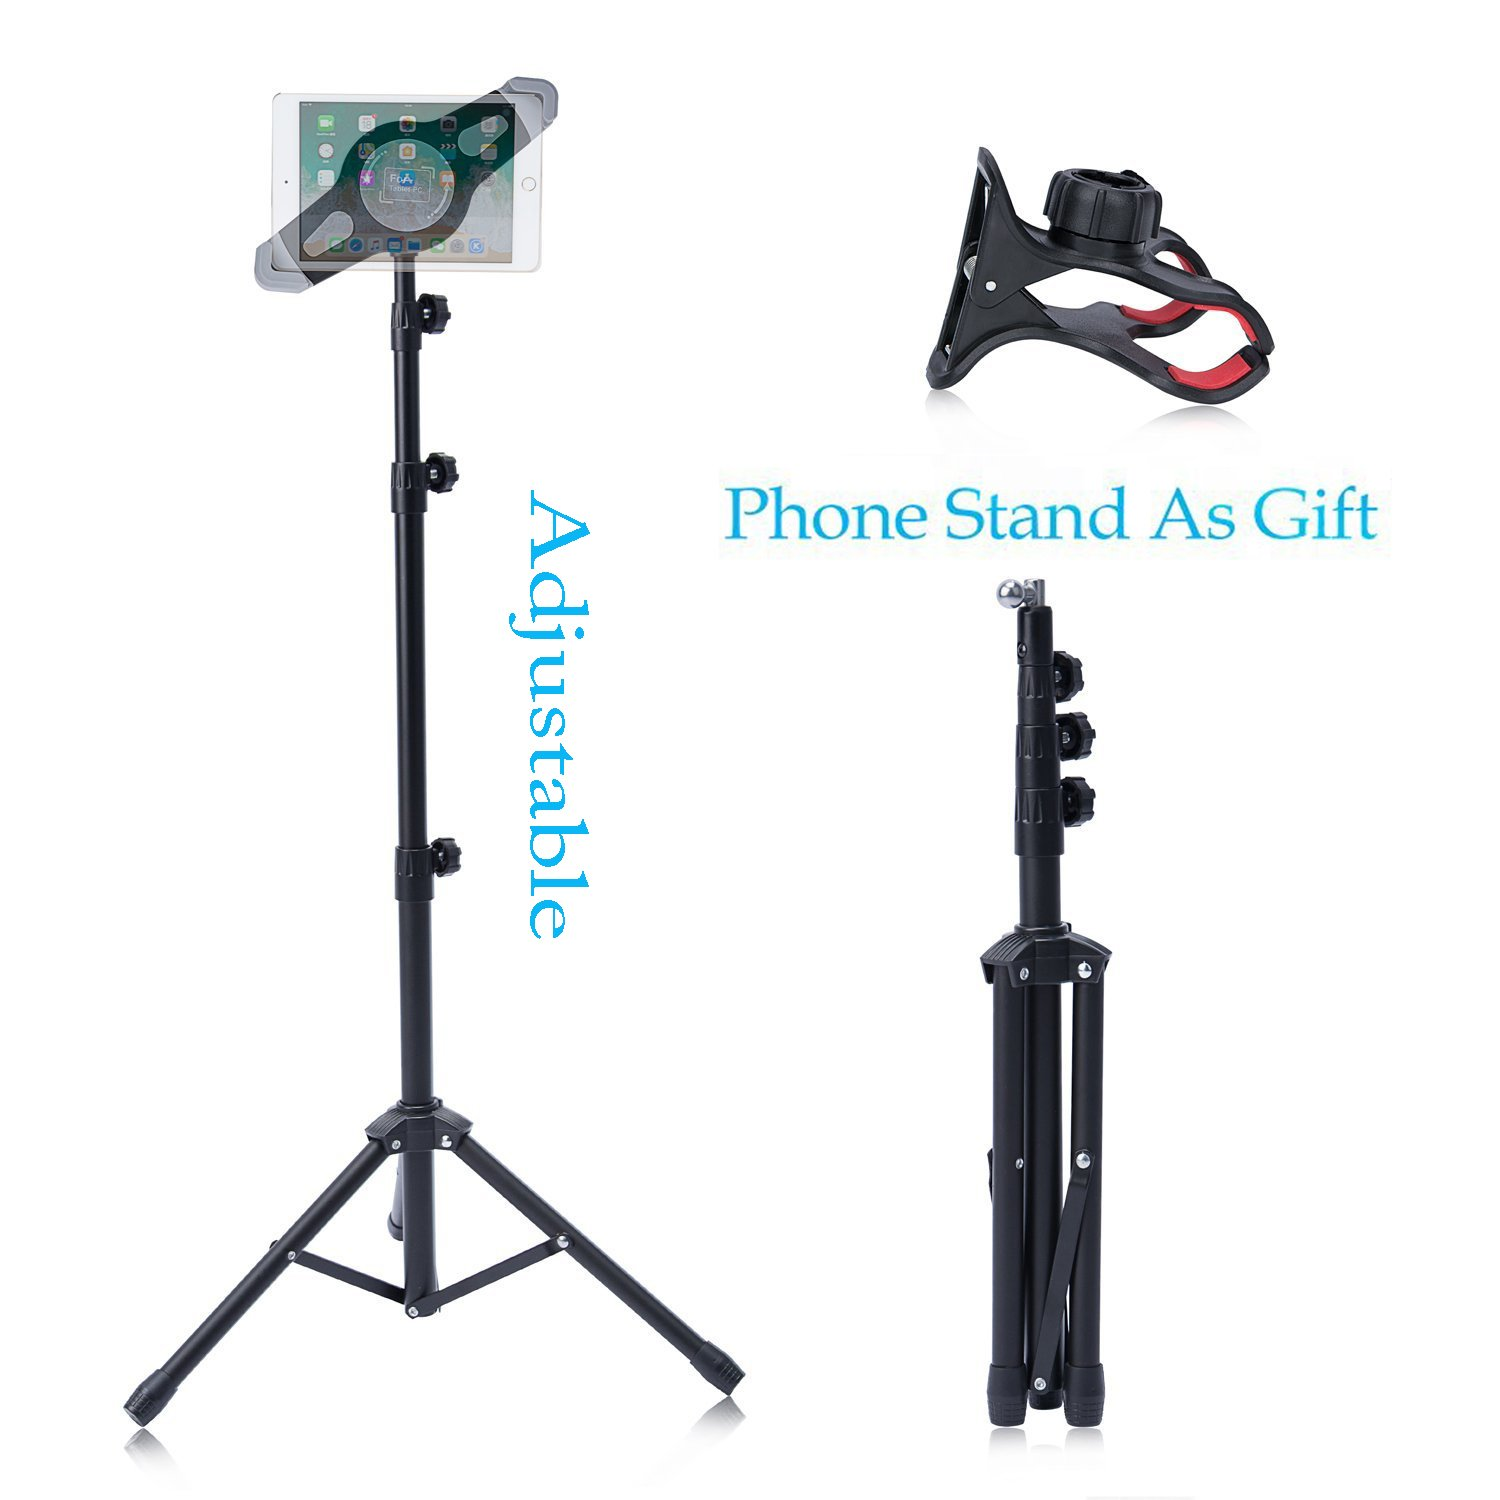 T-Sign Reinforced IPad Tripod Stand Mount - Foldable Floor Tablet Holder, Height Adjustable 360 Rotating Stand for iPad Mini/Air and More 7'' to 12'' Tablets, Carrying Case and Phone Holder As Gifts